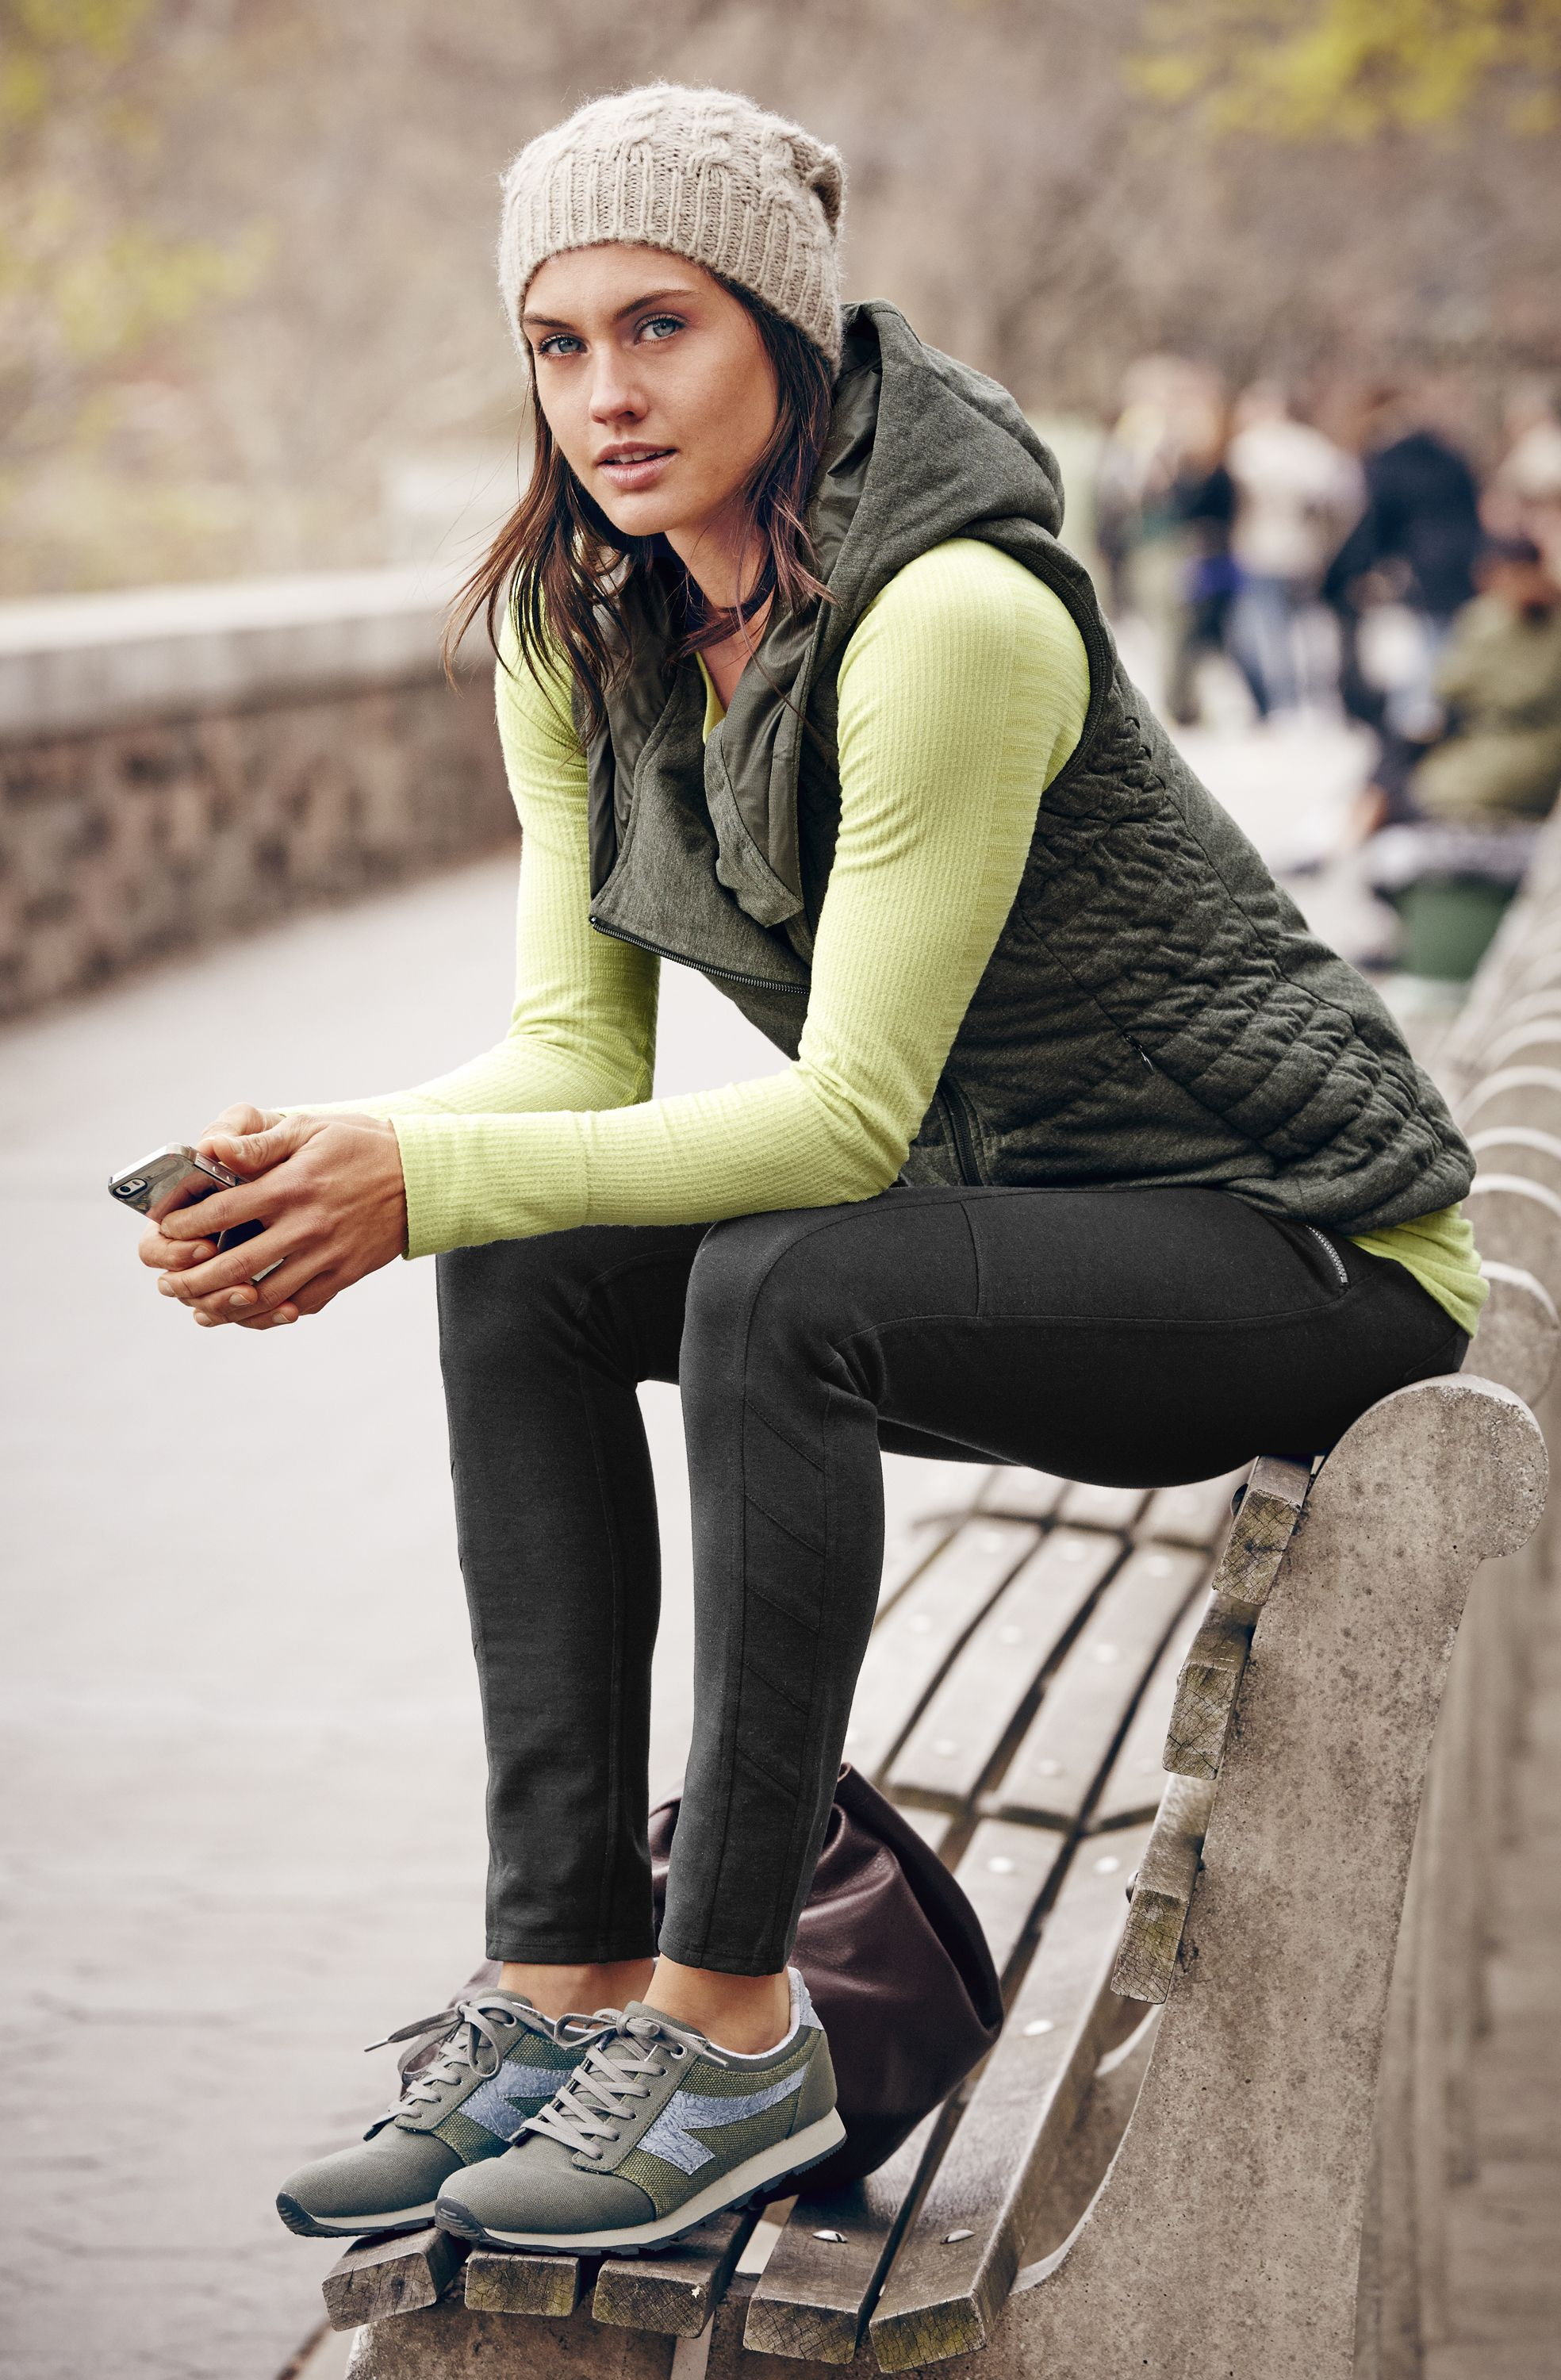 cd062c6d33503 Love this sporty, active look from Athlete! Perfect for a fall jog or hike  in the woods